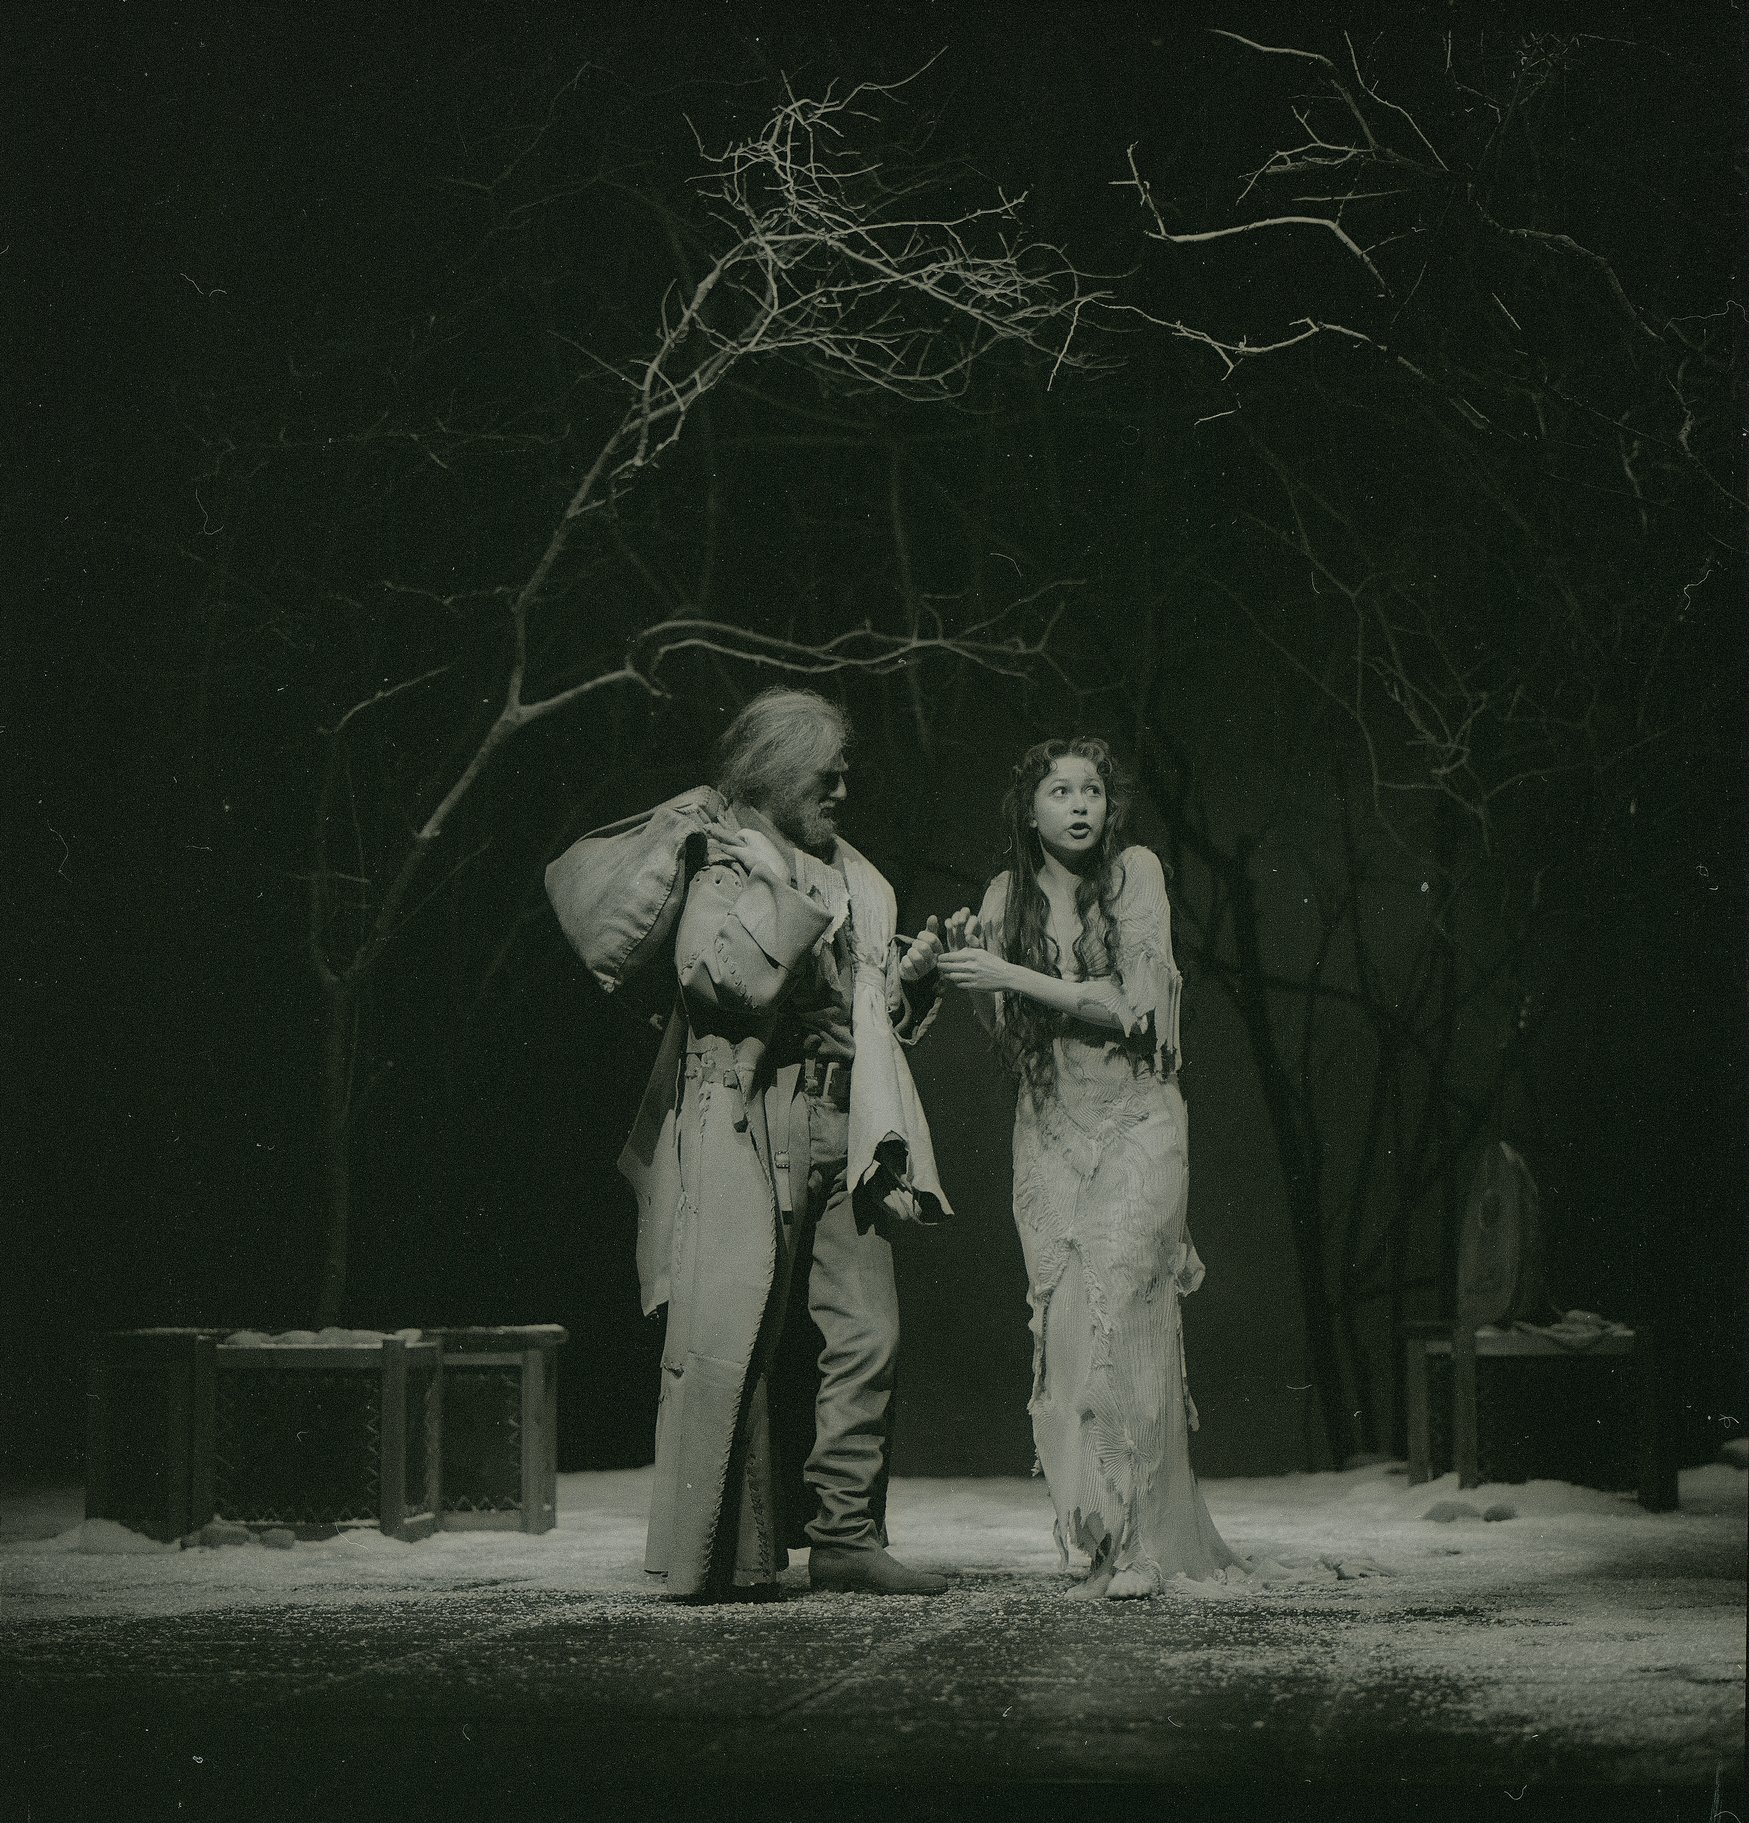 Viola, dressed in a ragged and torn white dress, stands with the captain who has a bag of possessions over his shoulder. There is scattered sand across the shore of Illyria in the 1983 production of Twelfth Night.